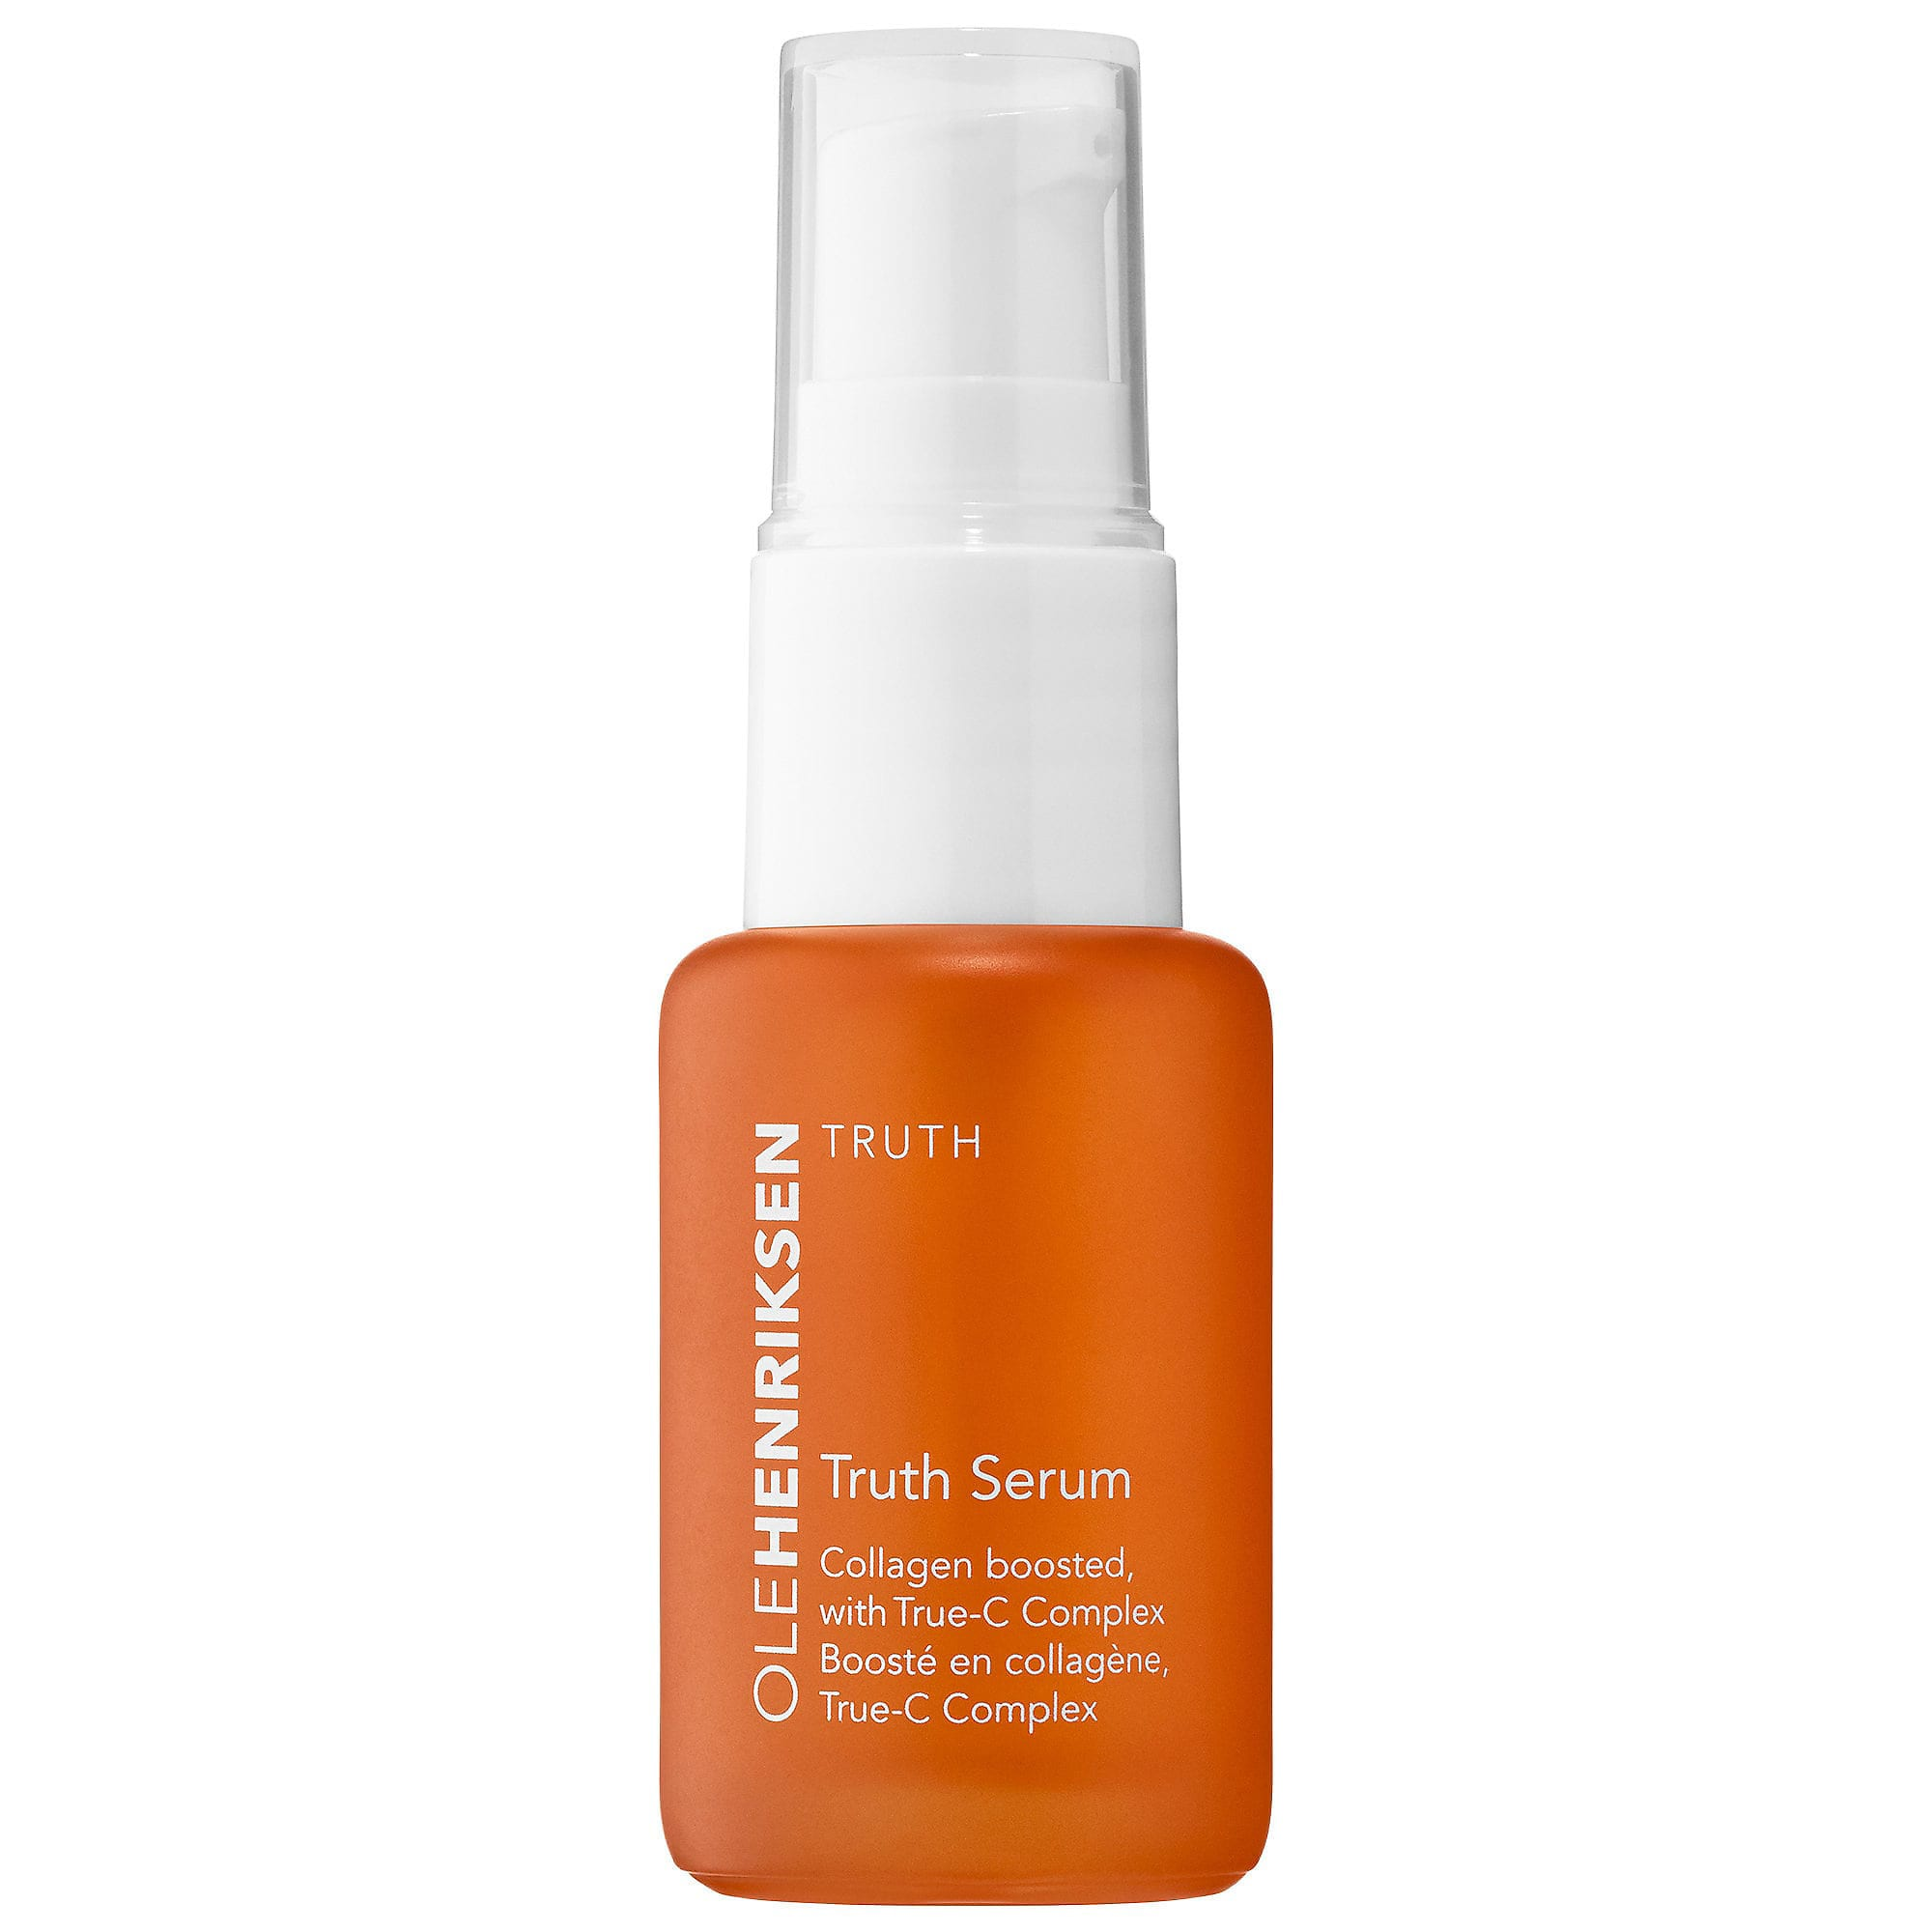 OLEHENRIKSEN-Truth Serum®